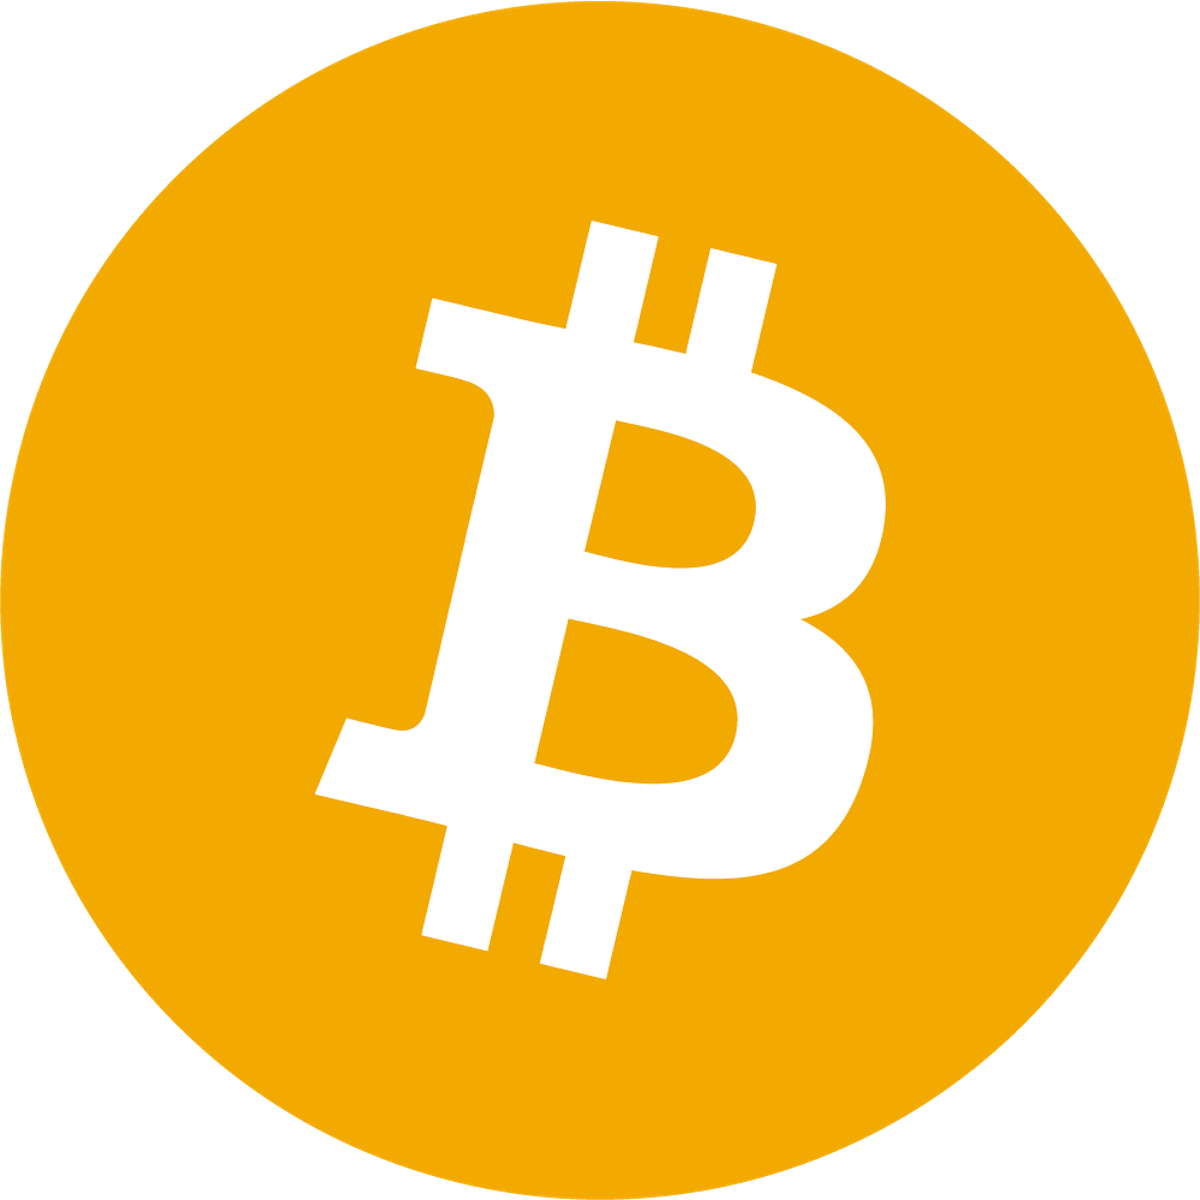 Show Price in BTC | Shopify App Store